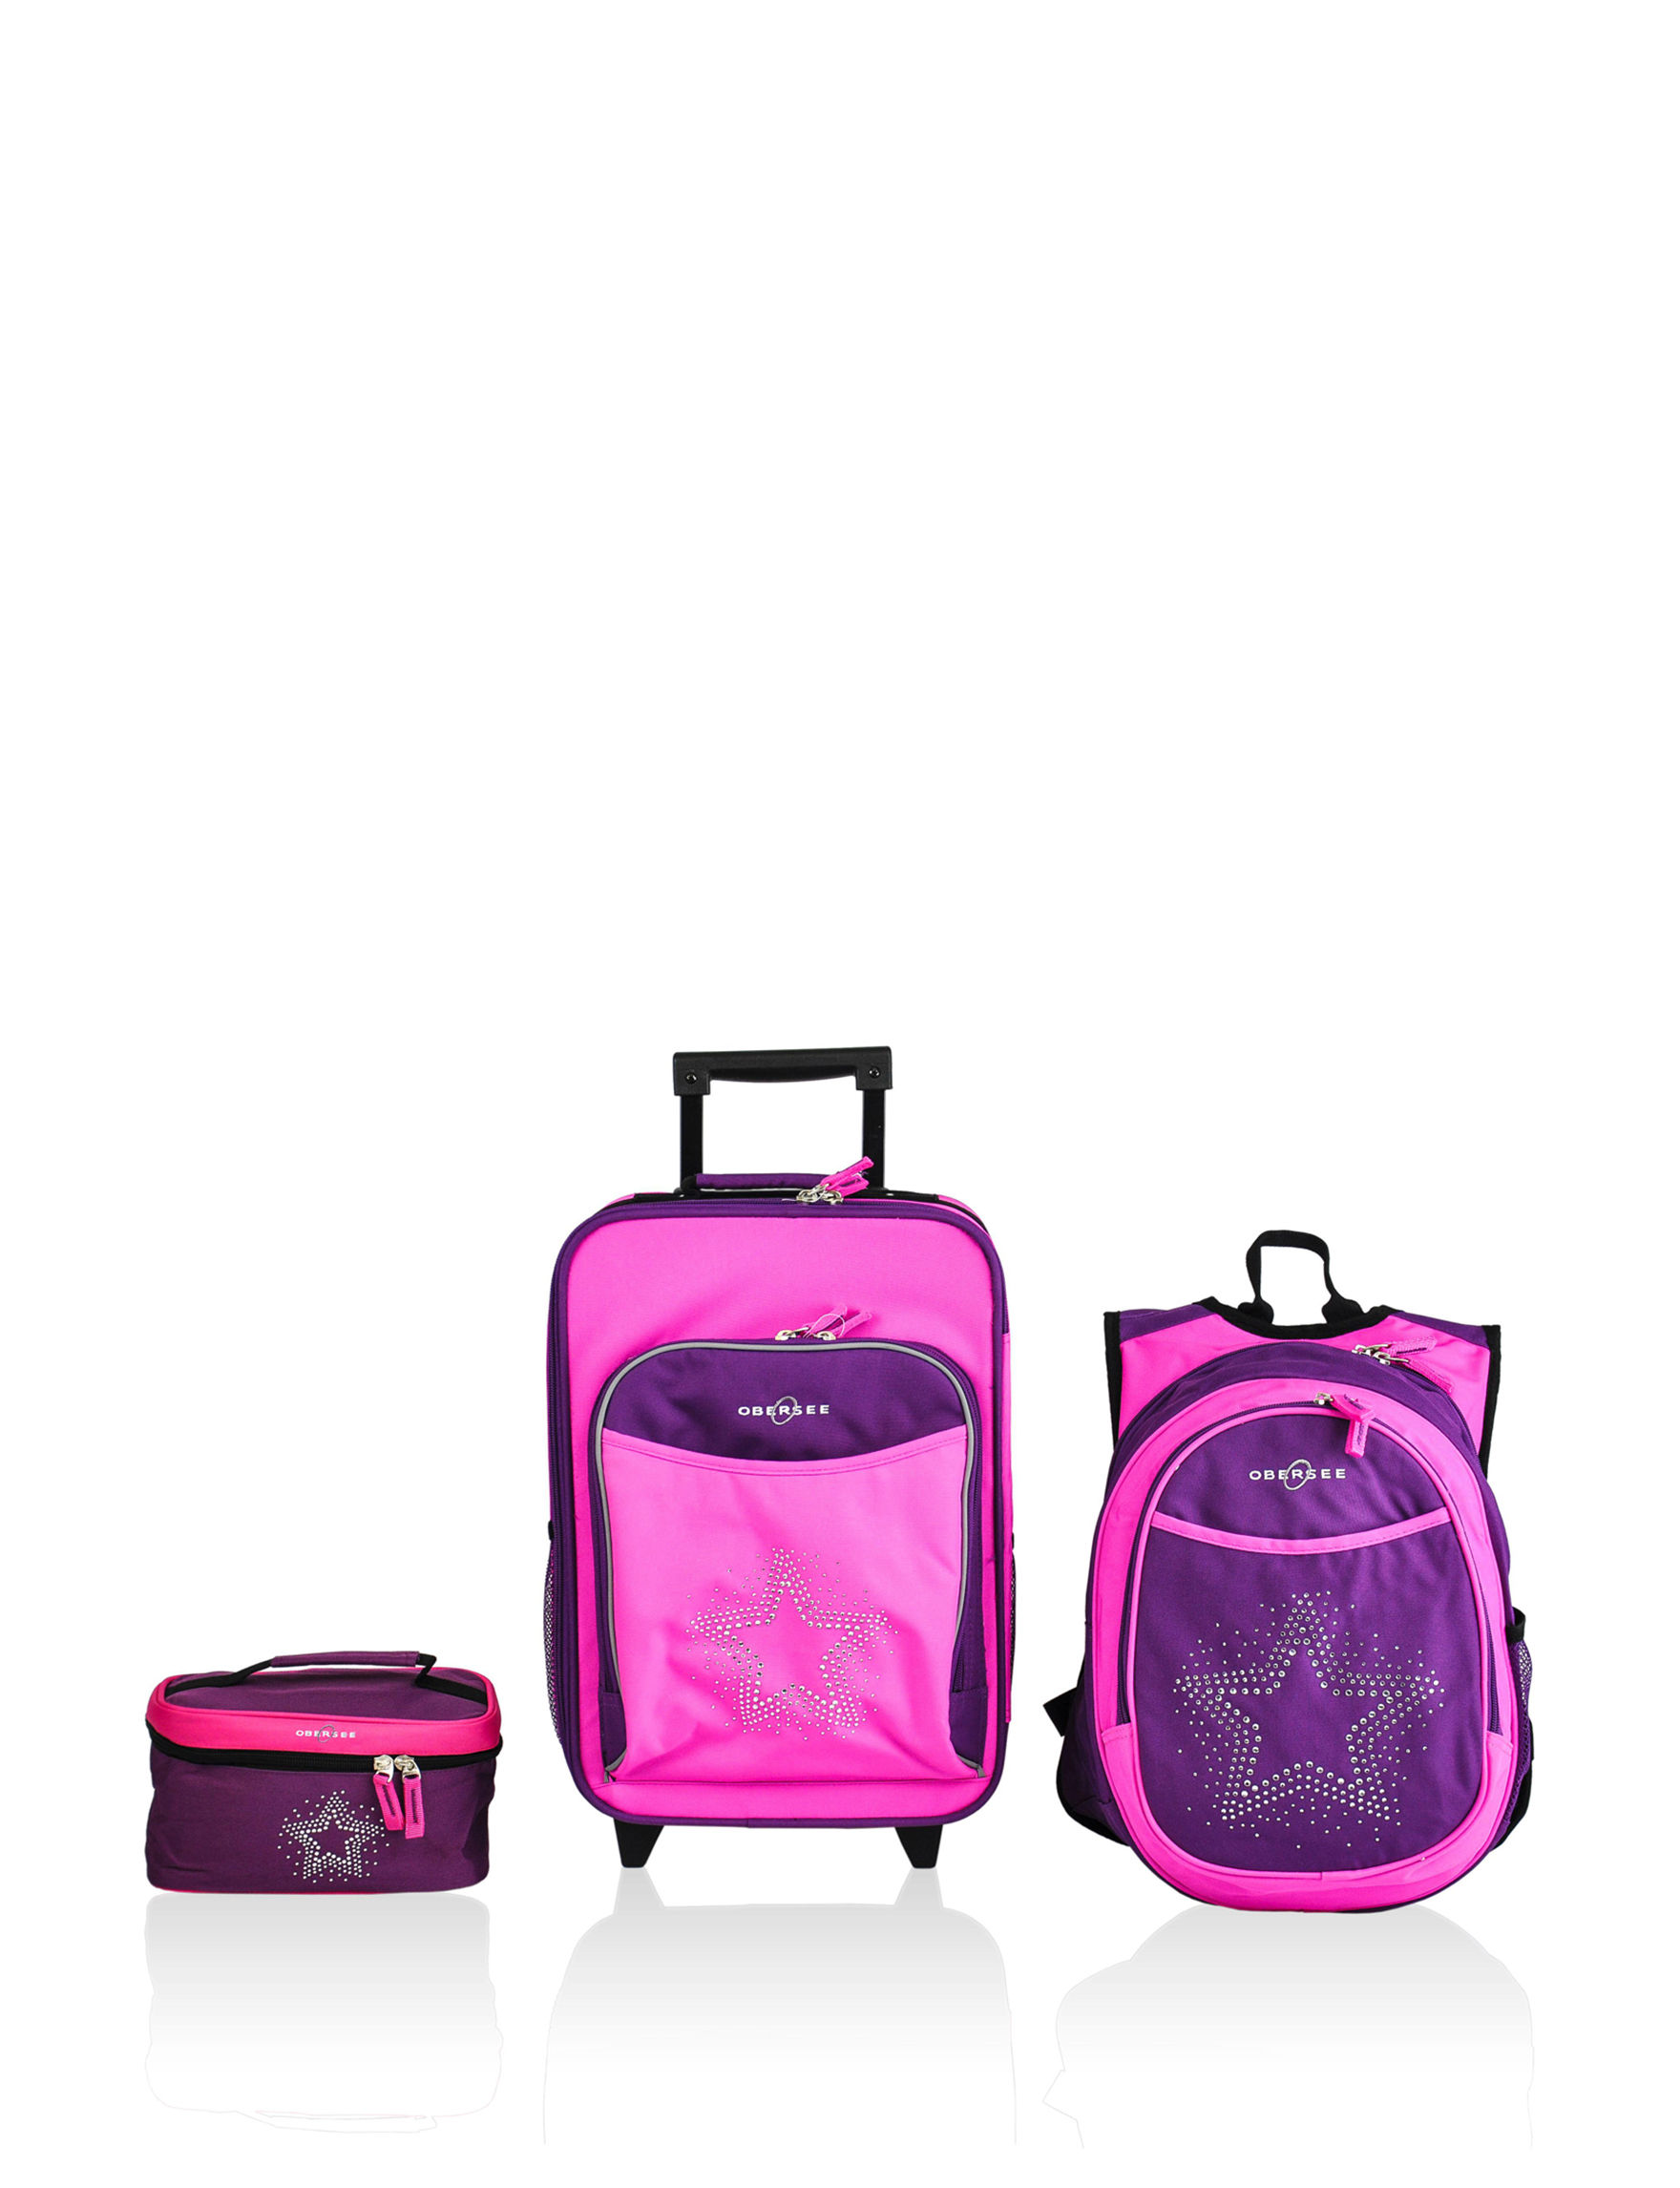 Obersee Purple / Pink Luggage Sets